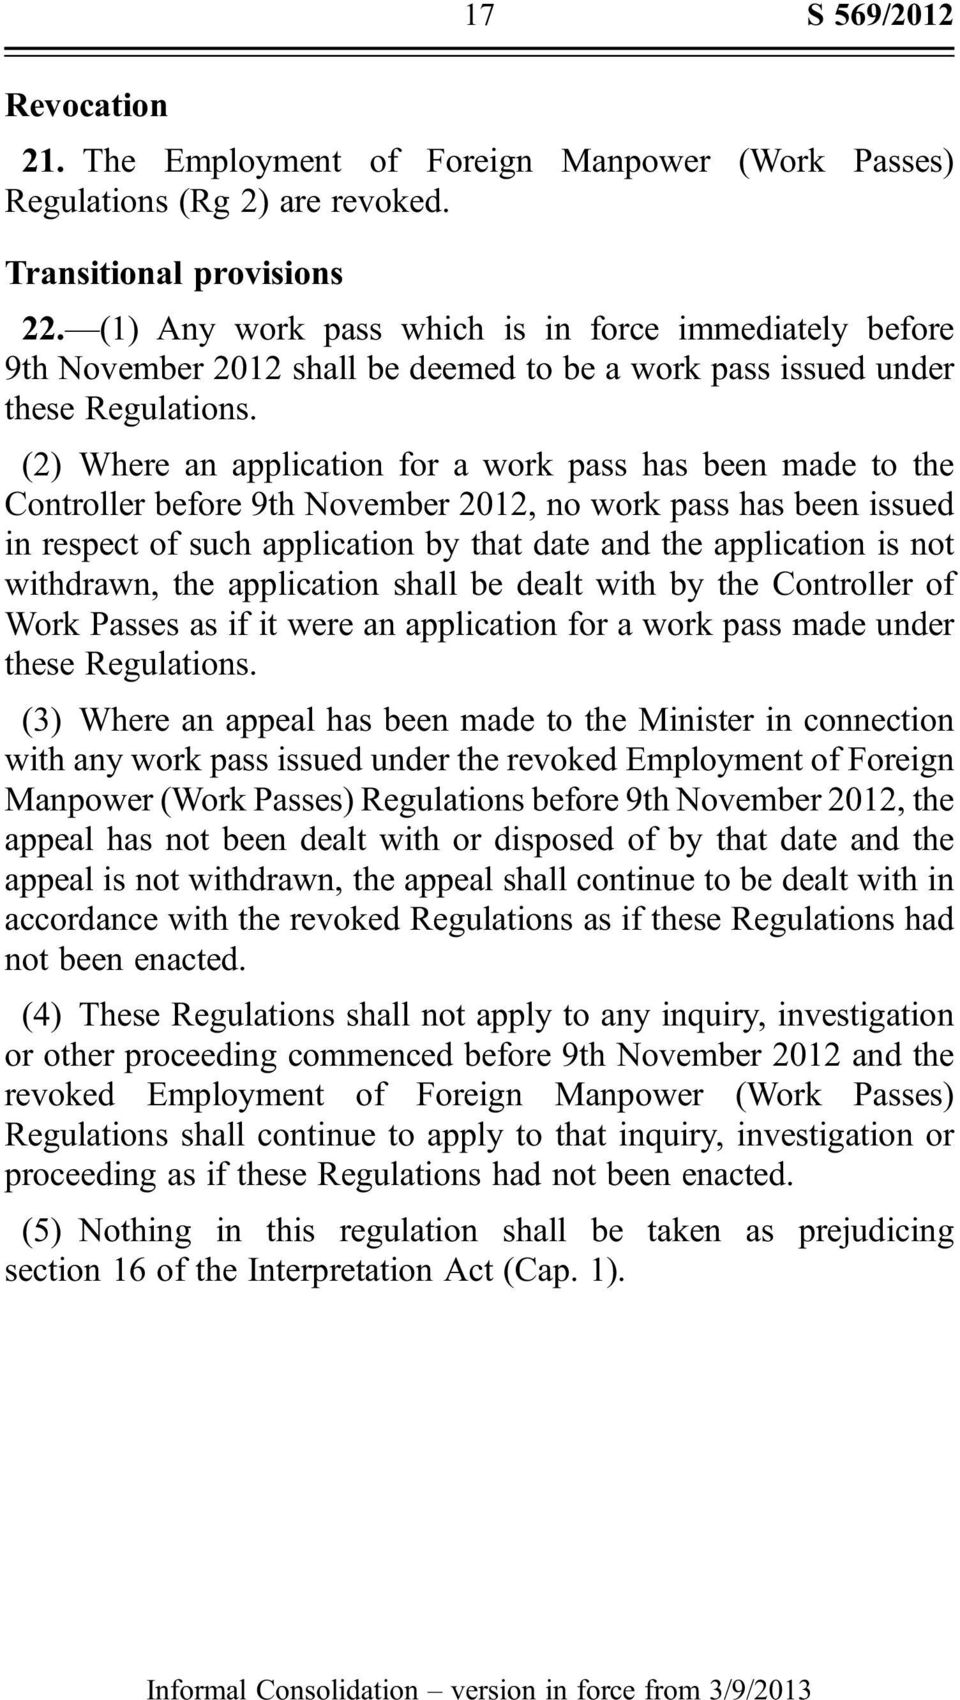 (2) Where an application for a work pass has been made to the Controller before 9th November 2012, no work pass has been issued in respect of such application by that date and the application is not